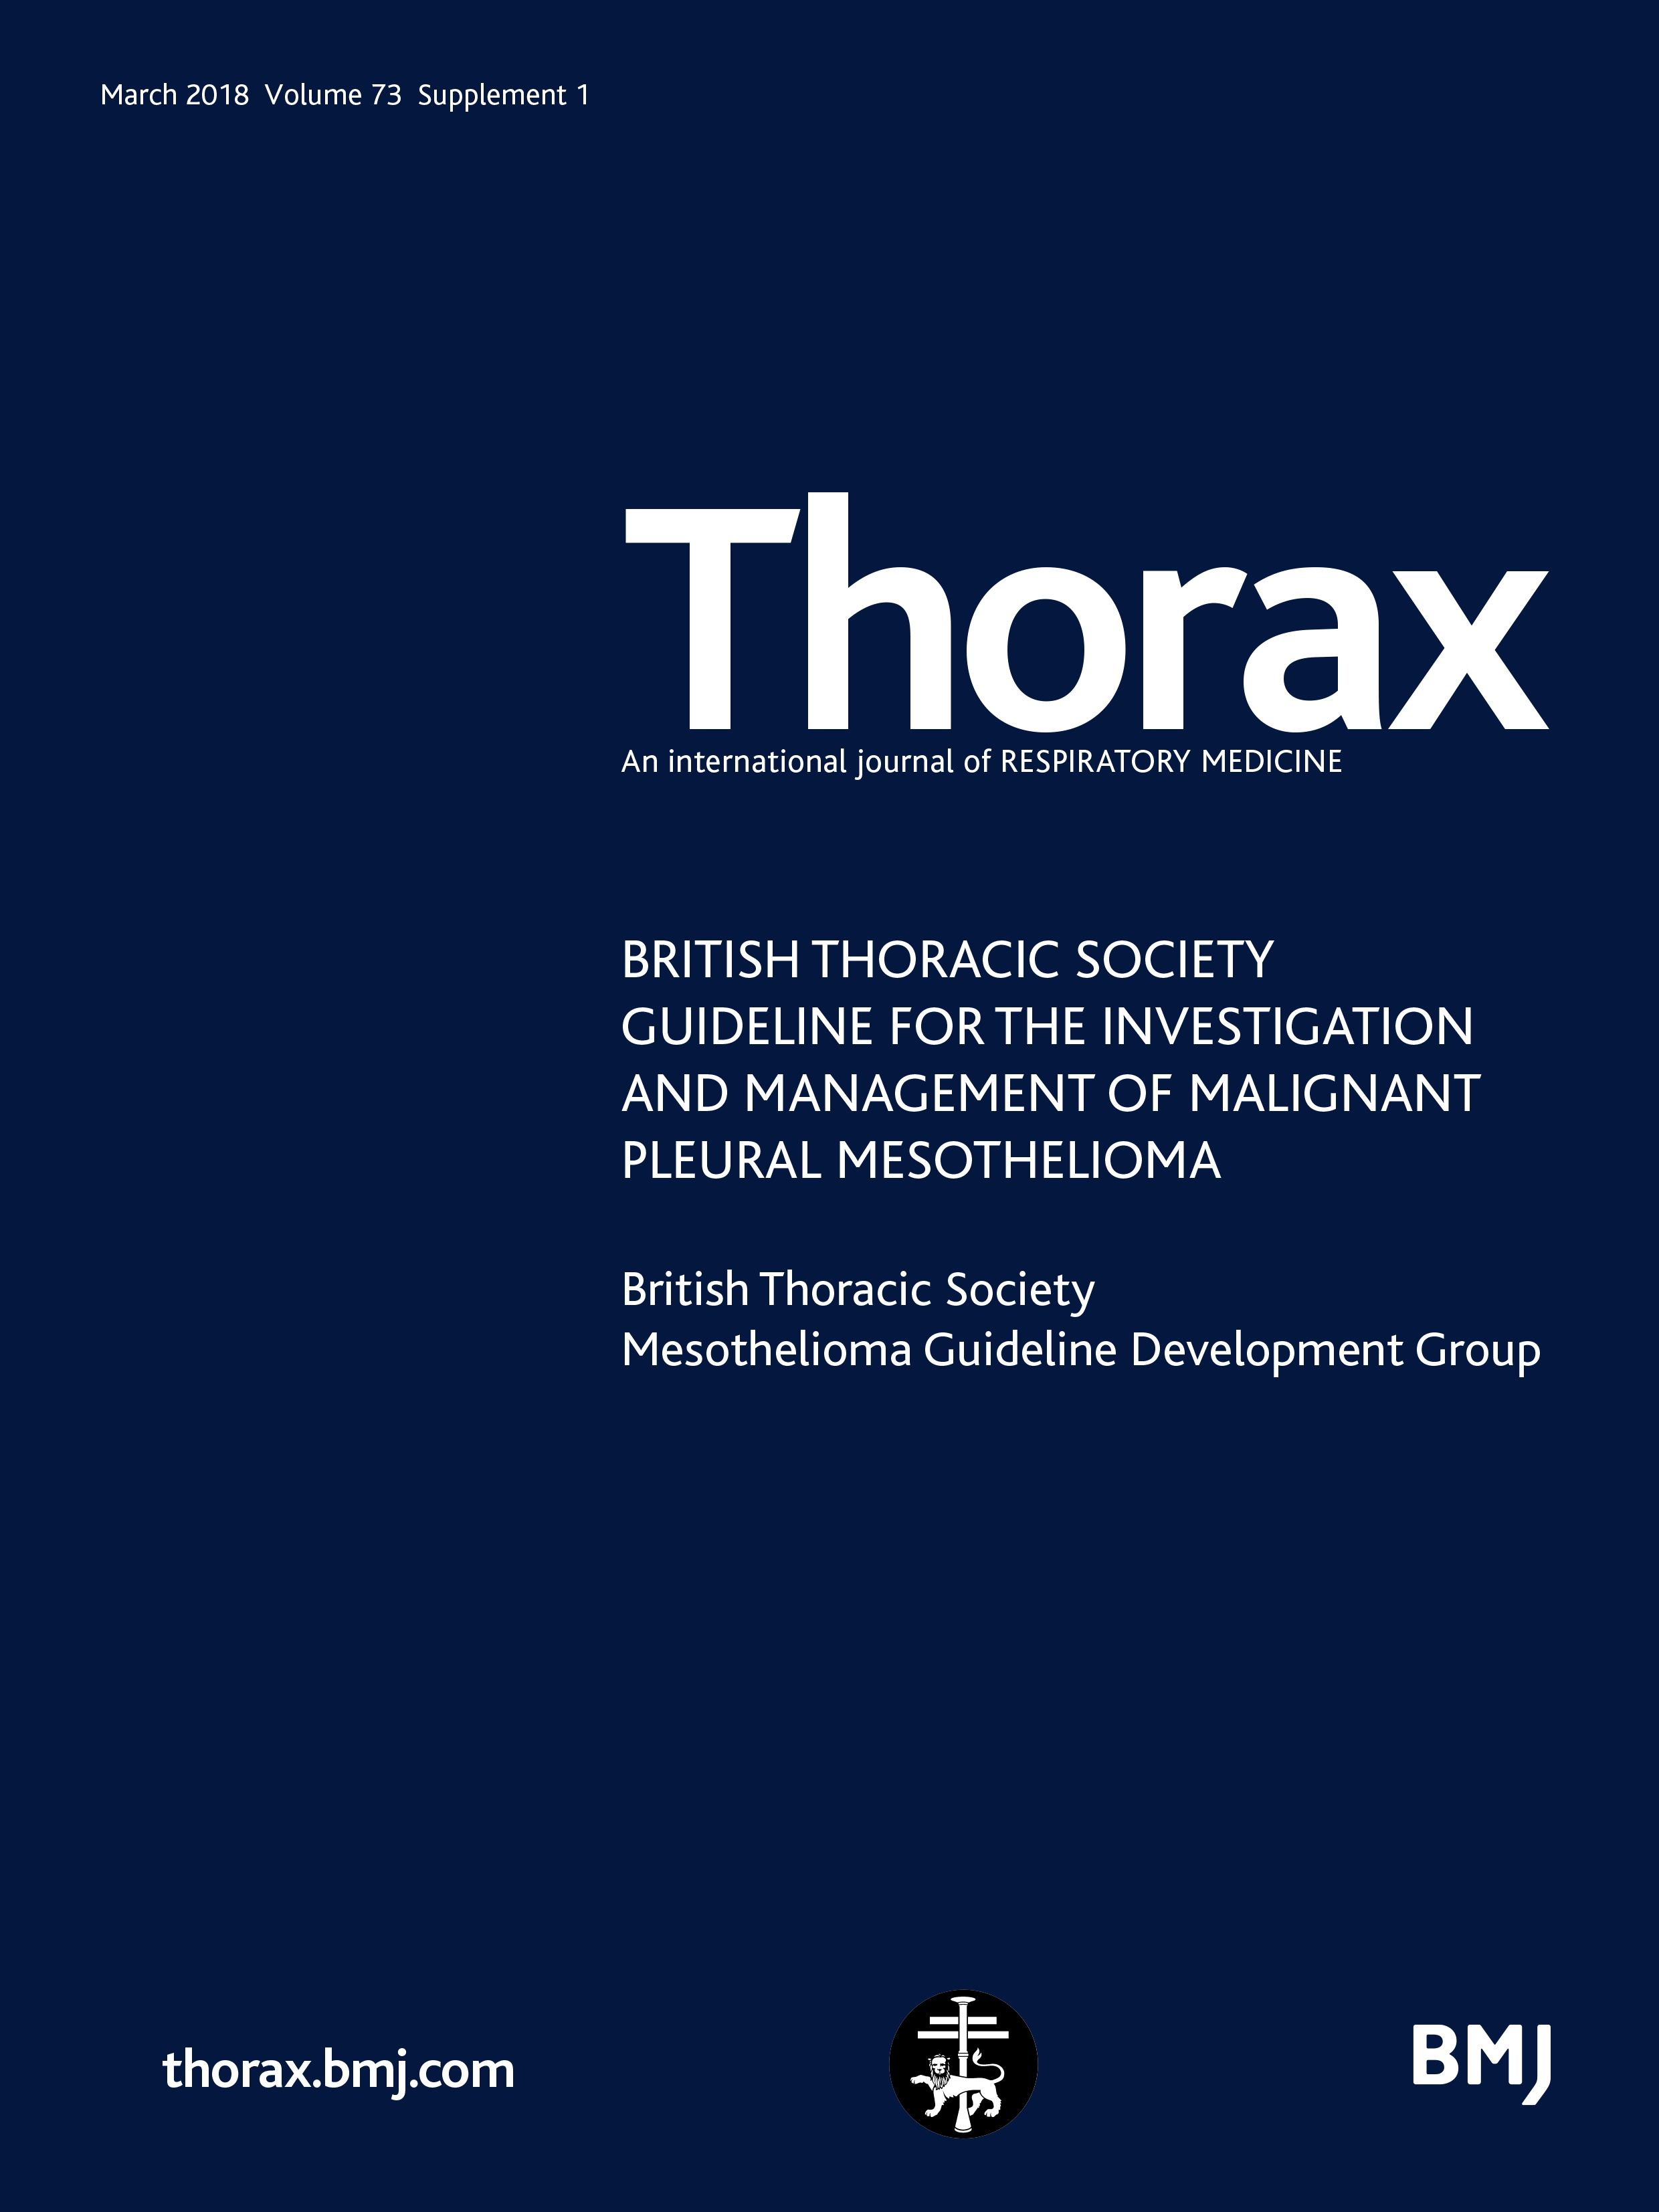 British Thoracic Society Guideline For The Investigation And Management Of Malignant Pleural Mesothelioma Thorax